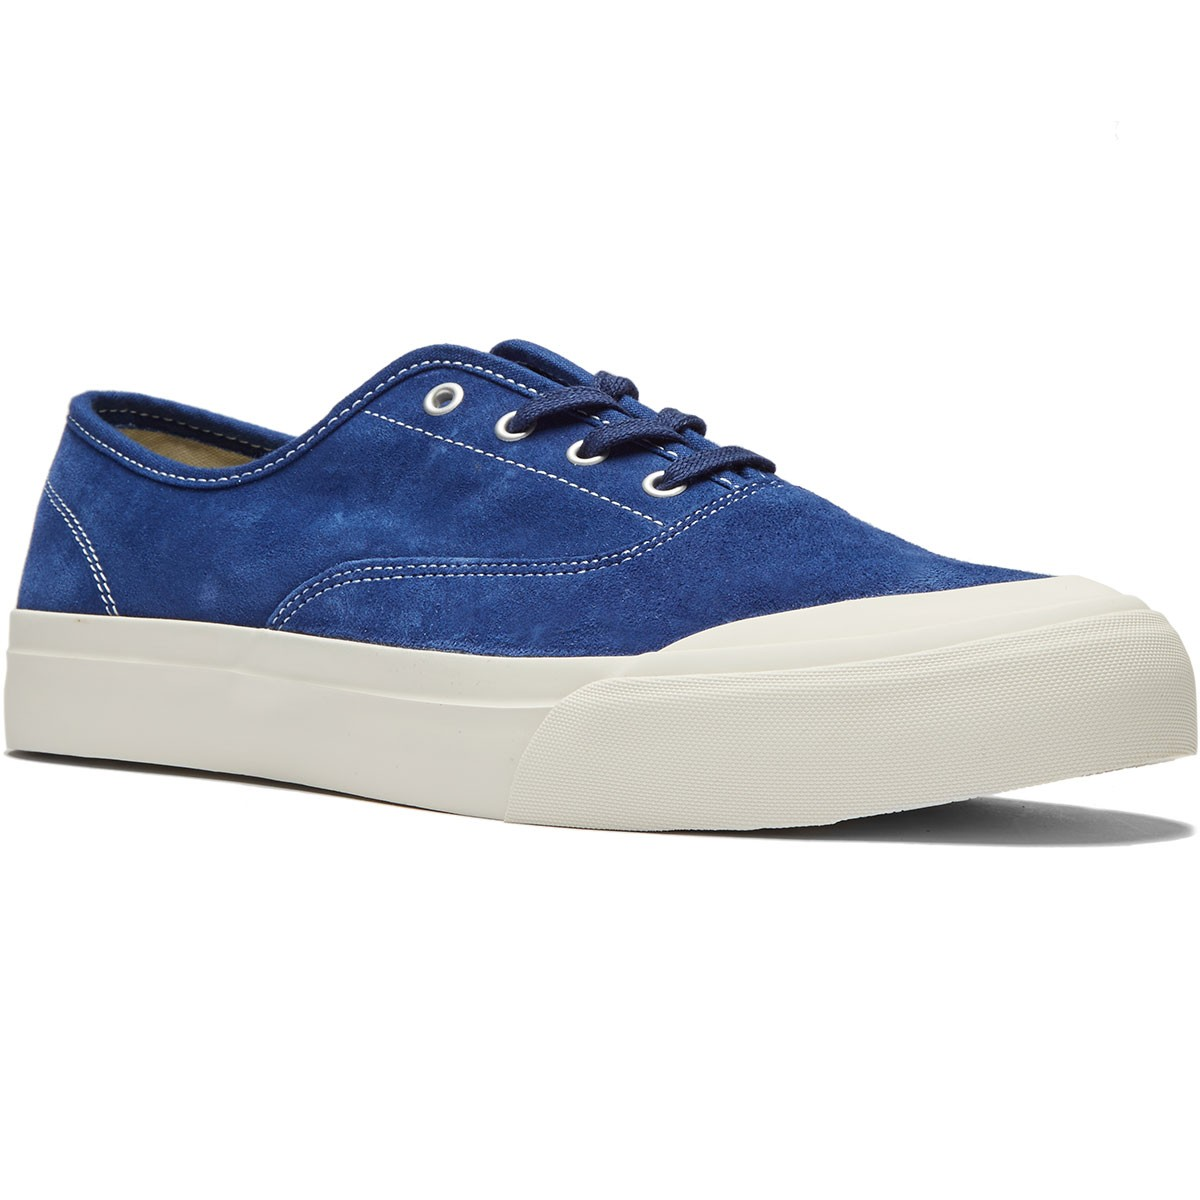 HUF Cromer Shoes - Blue Depths - 8.0